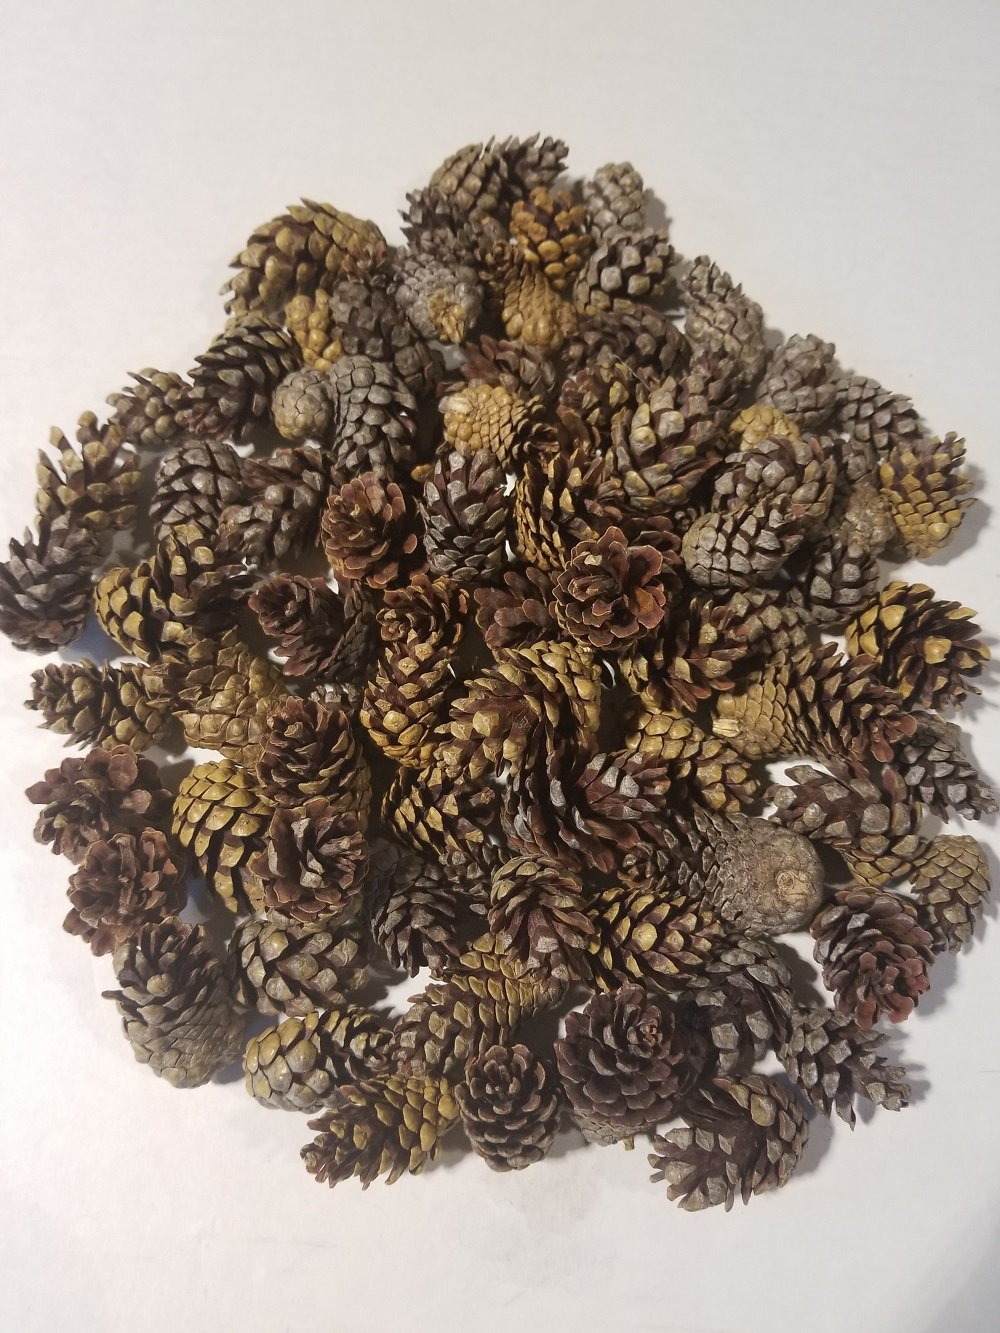 Large Bag of Weathered Small Pinecones - Perfect for Weddings or Bowl Fillers - Unscented for Decoration Or Homemade Potpourri - Made in USA